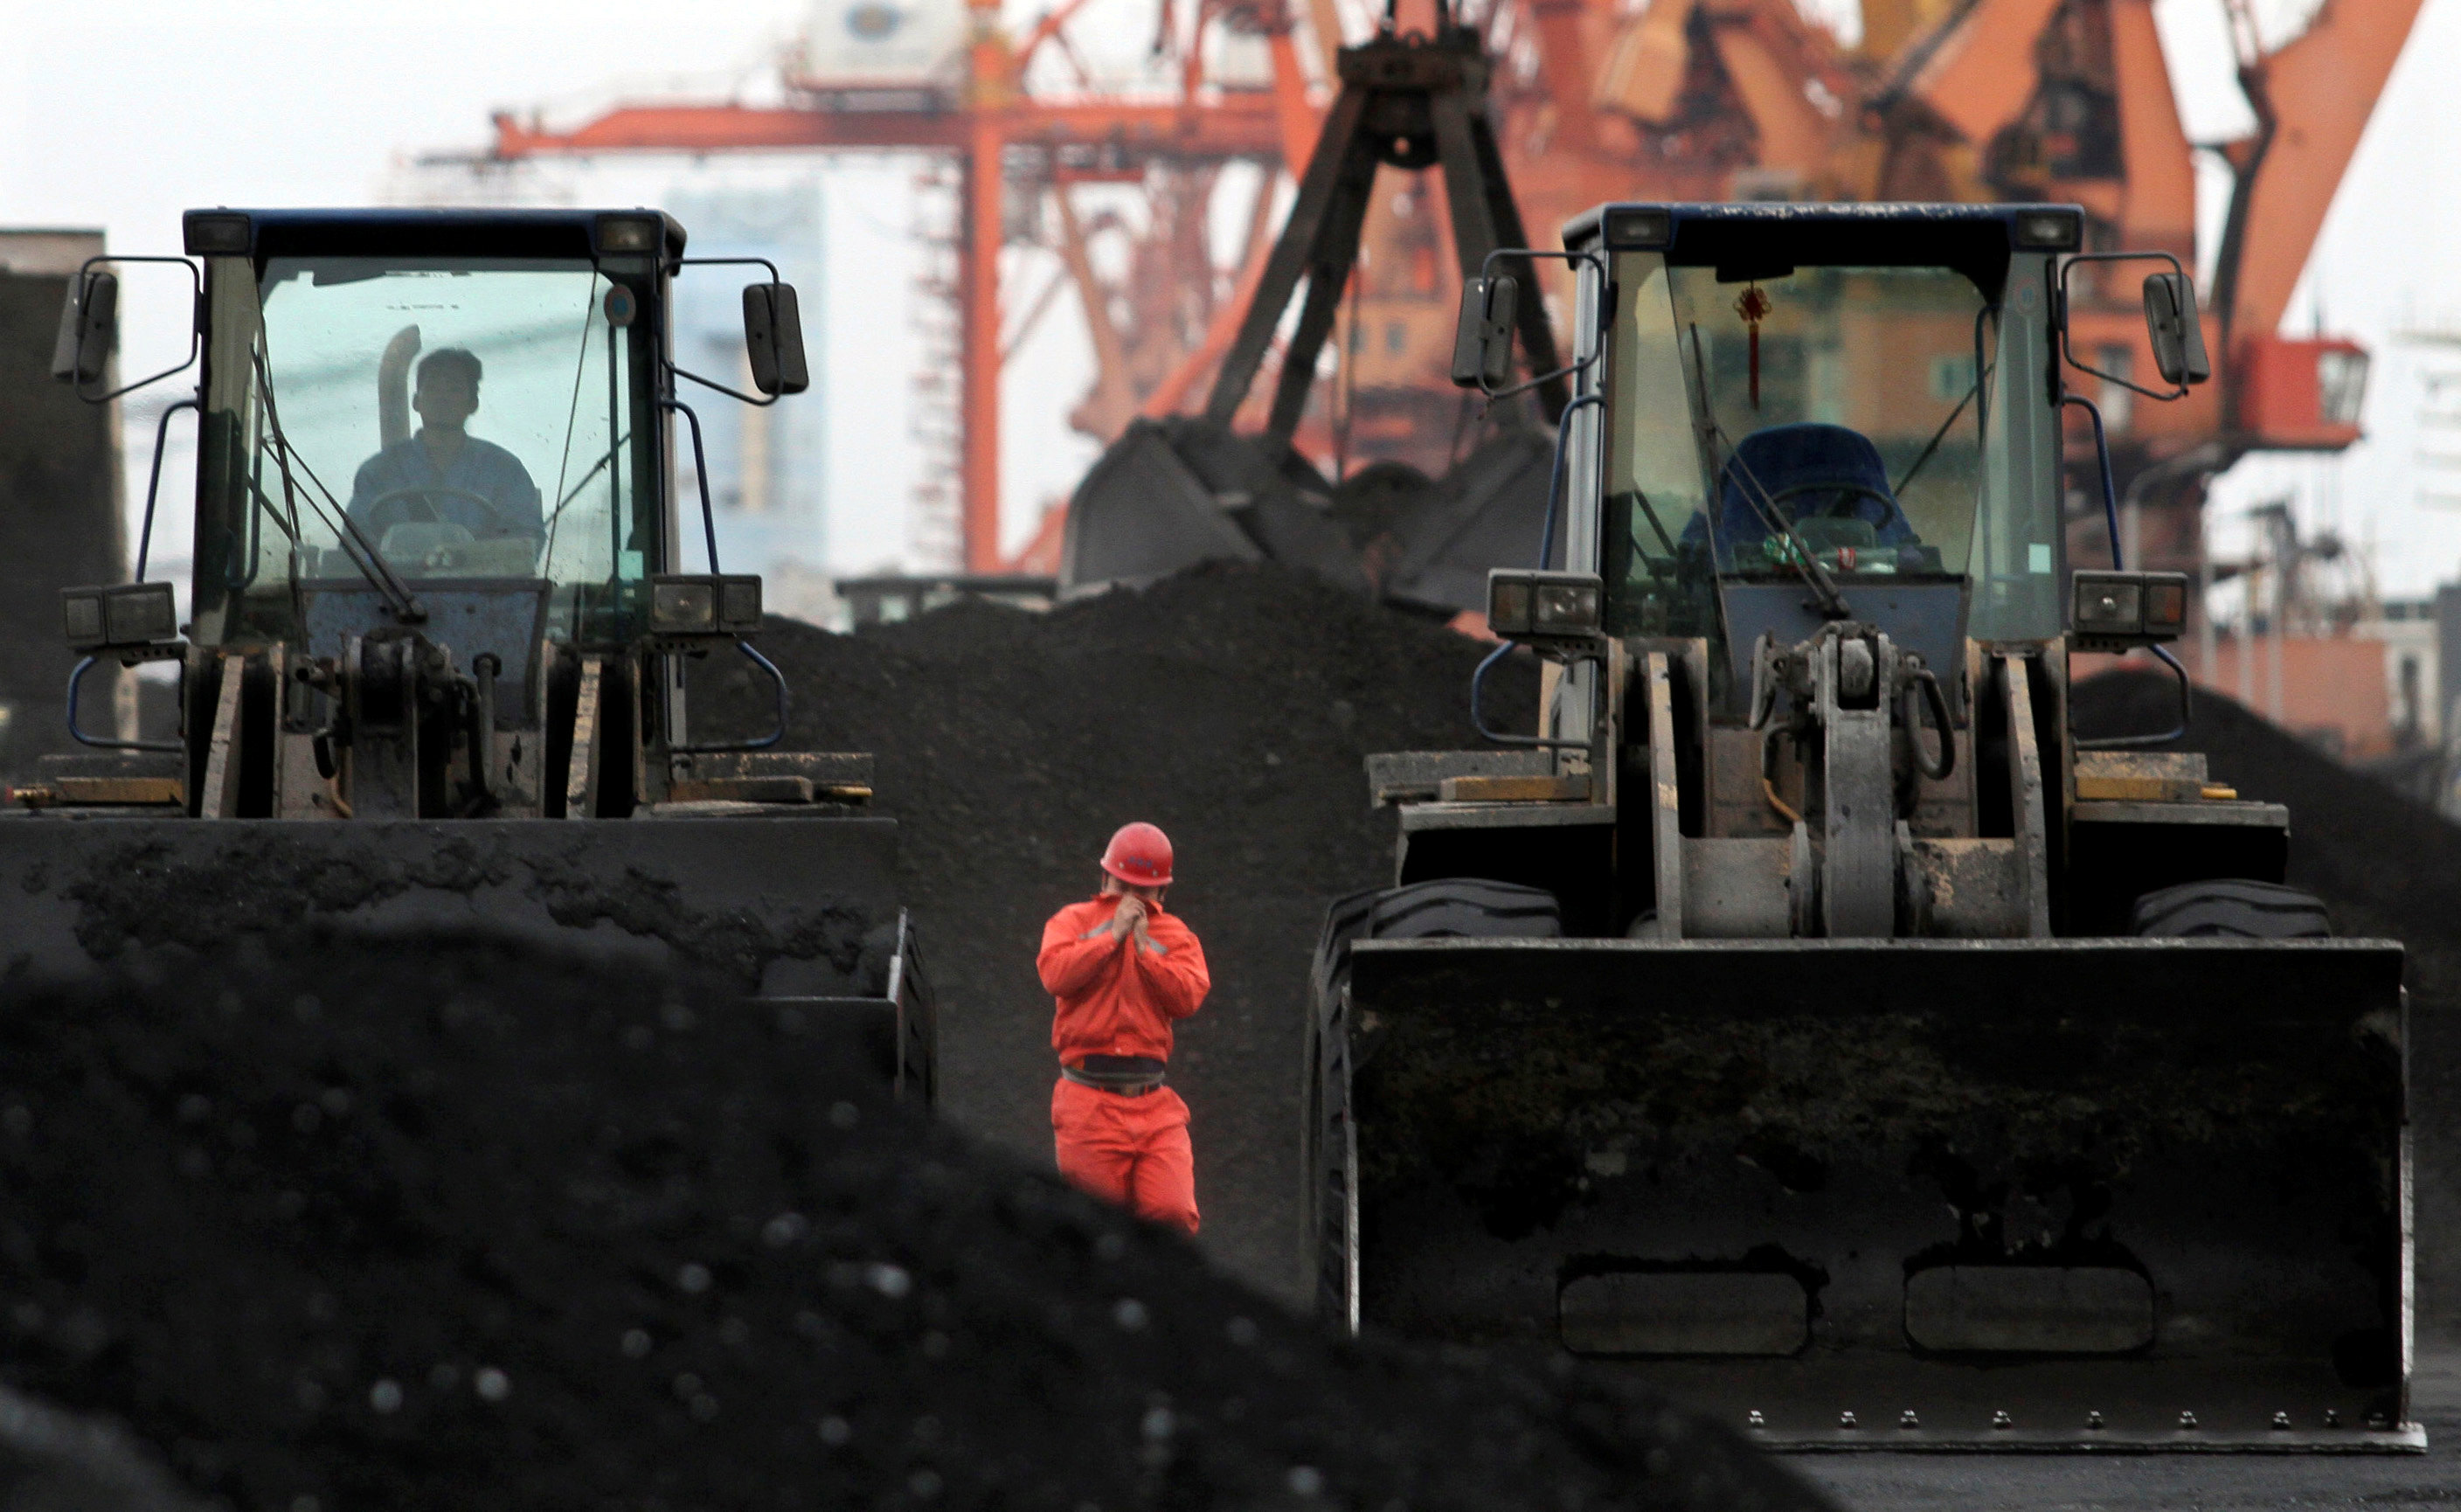 An employee walks between front-end loaders which are used to move coal imported from North Korea at Dandong port in the Chinese border city of Dandong, Liaoning province December 7, 2010. REUTERS/Stringer/File Photo   CHINA OUT. NO COMMERCIAL OR EDITORIAL SALES IN CHINA